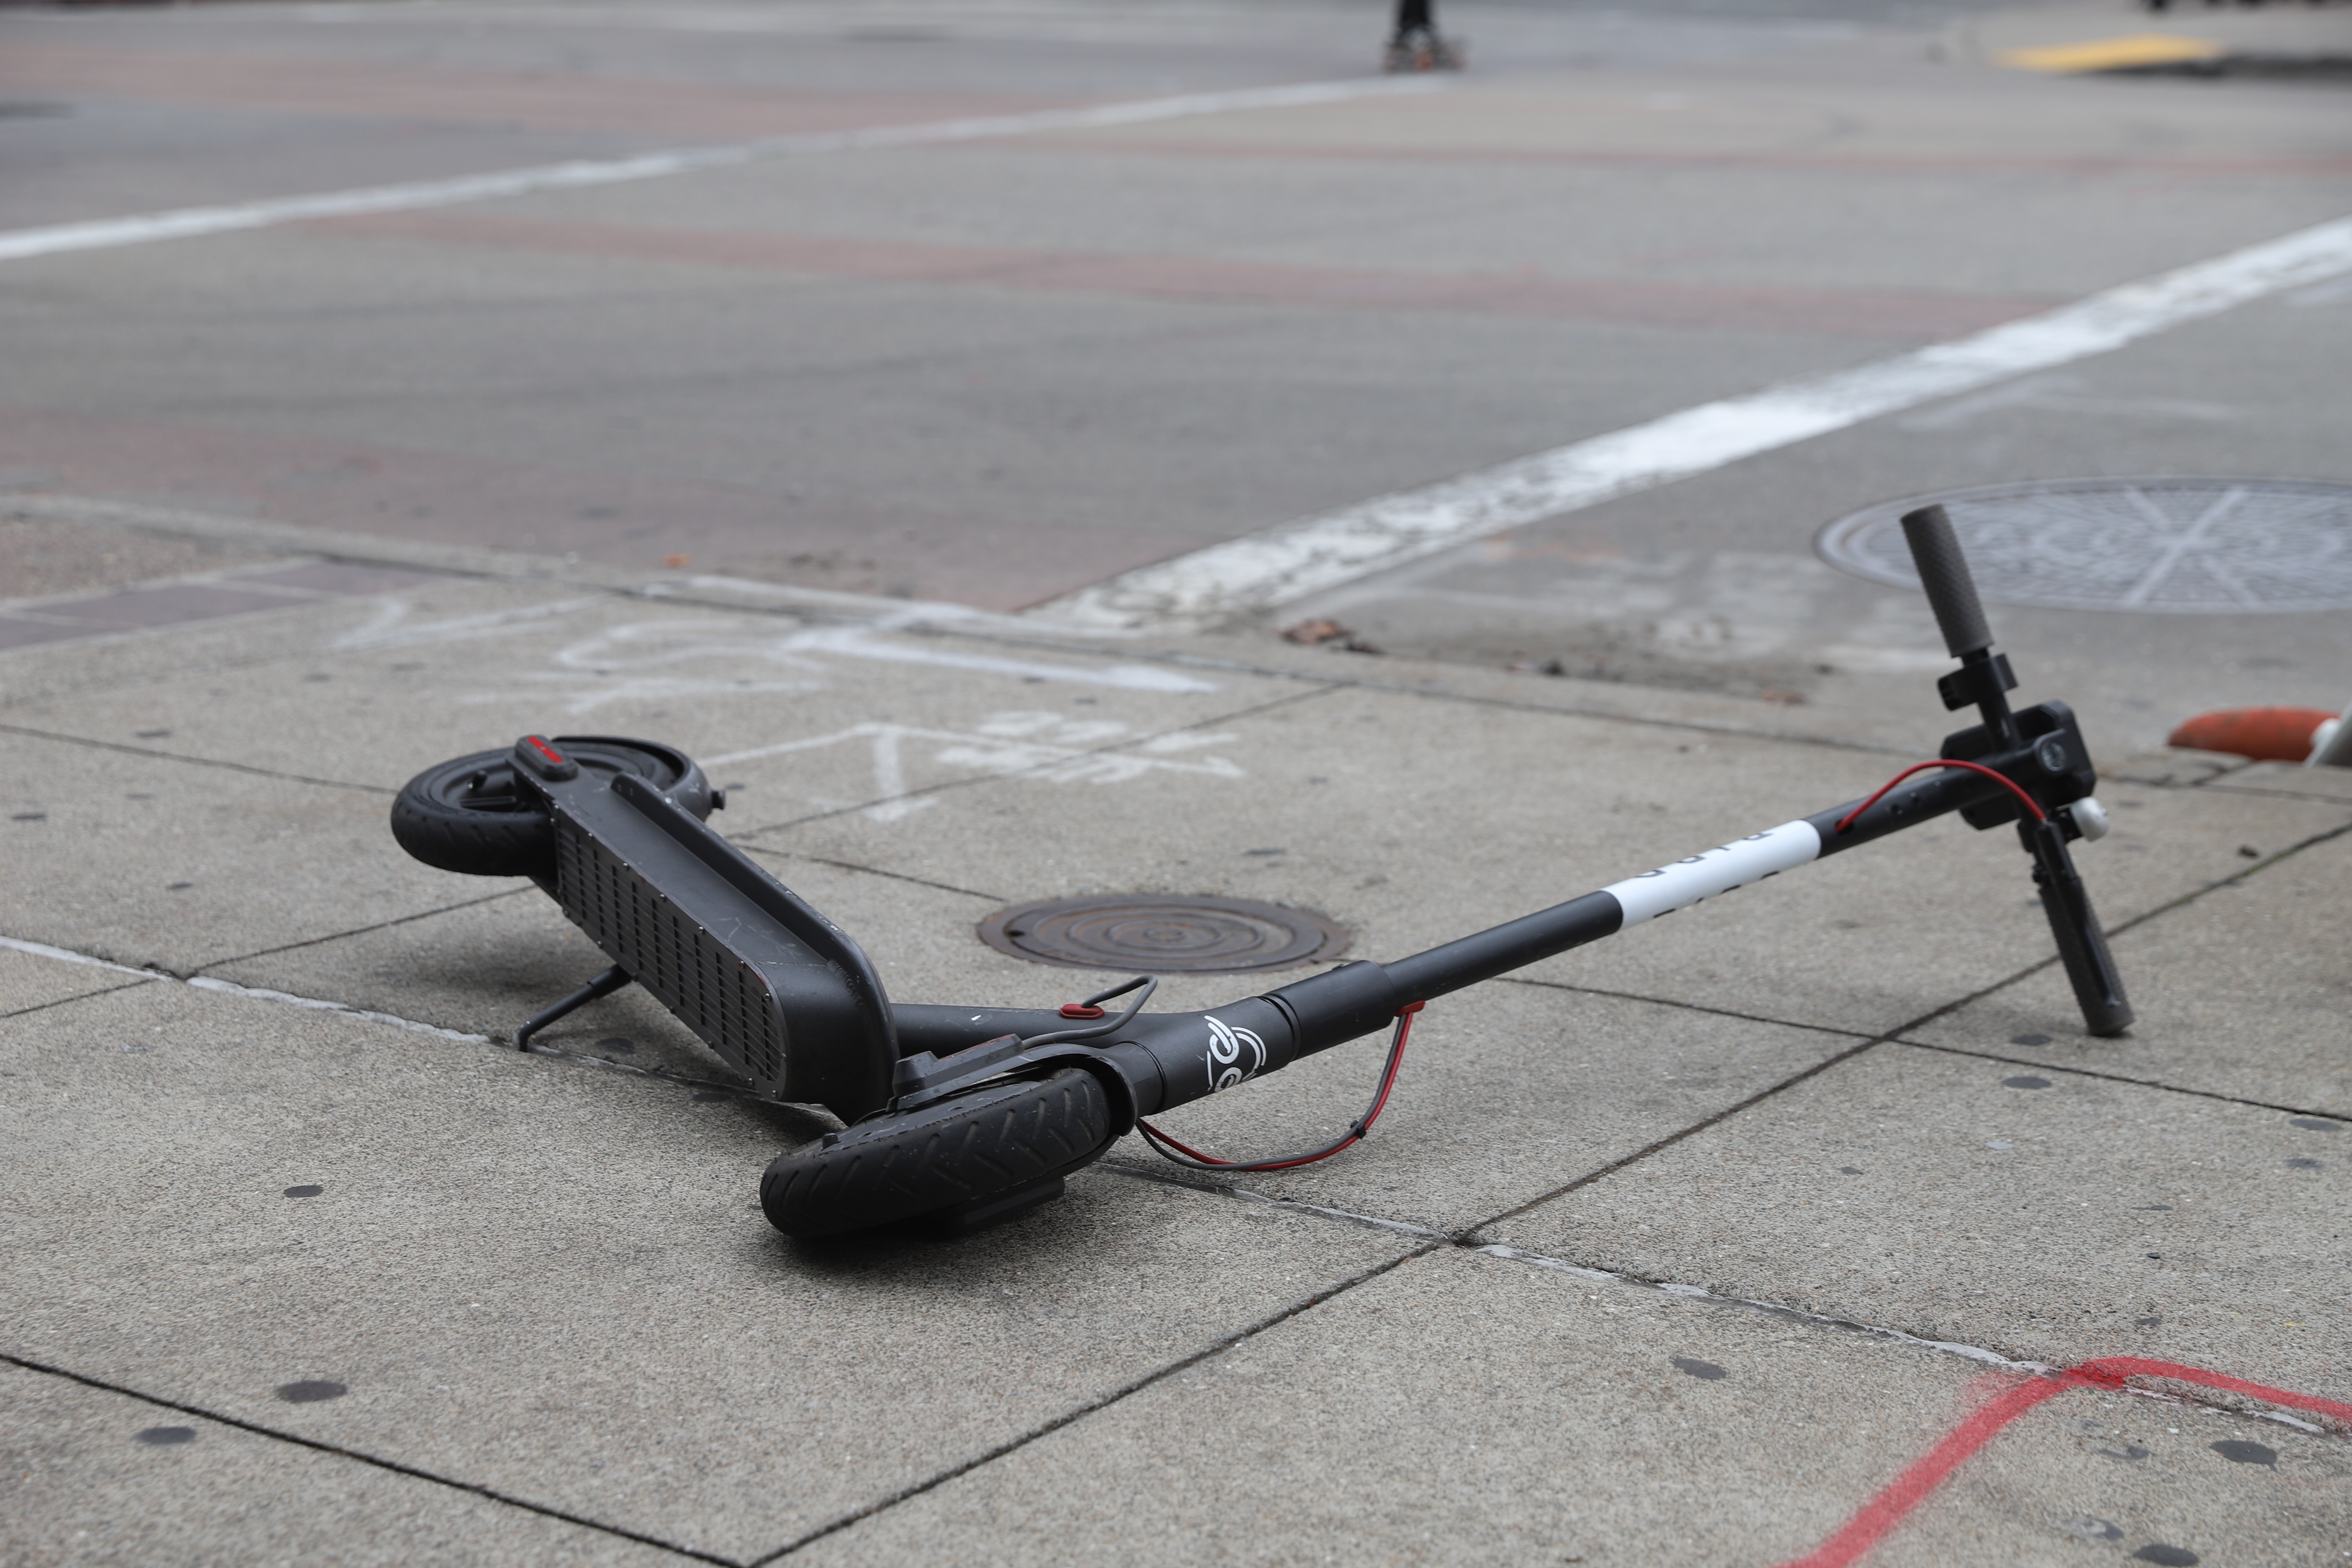 A dockless electric scooter on its side on a city sidewalk.